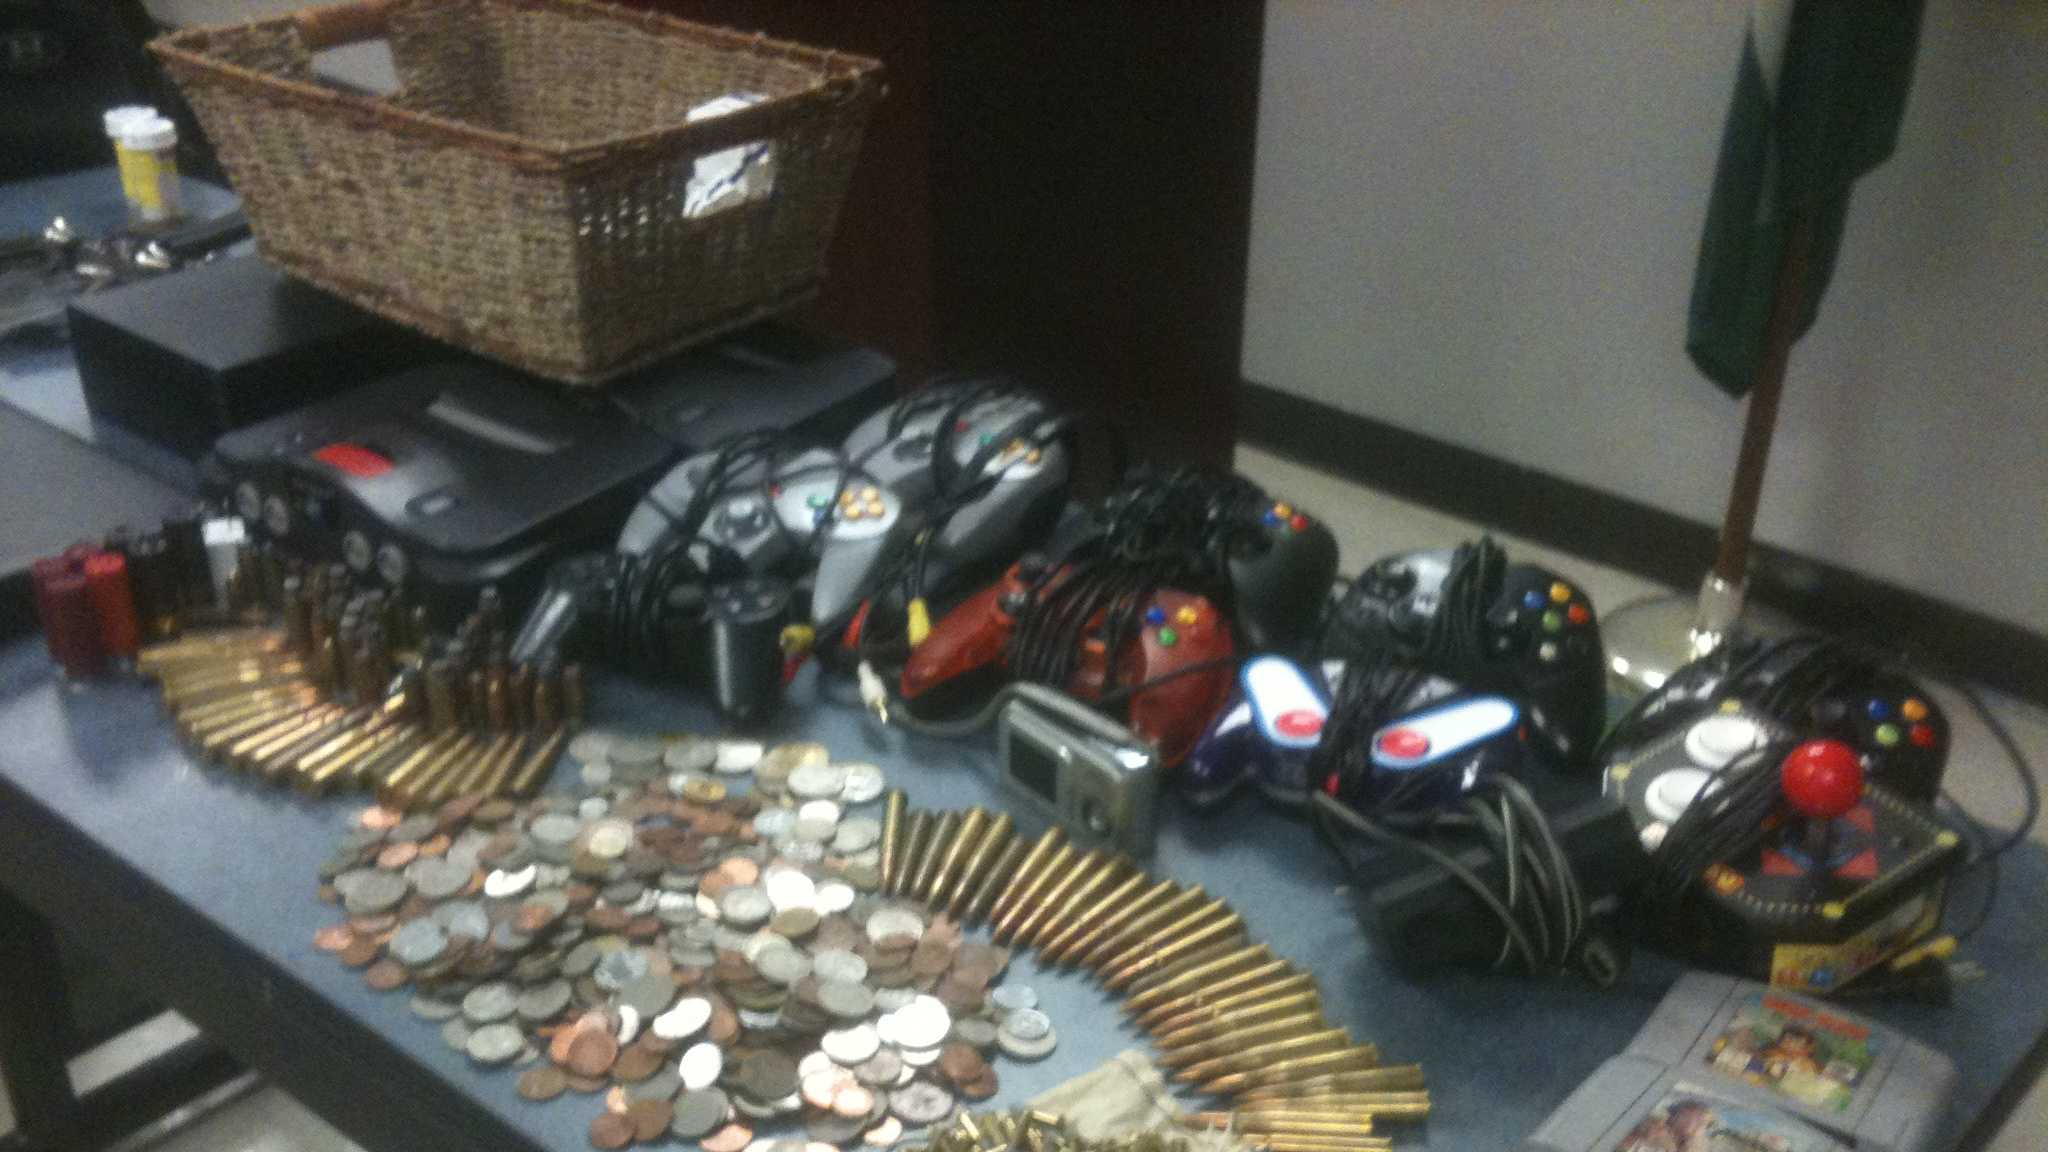 stolen items recovered 2.JPG